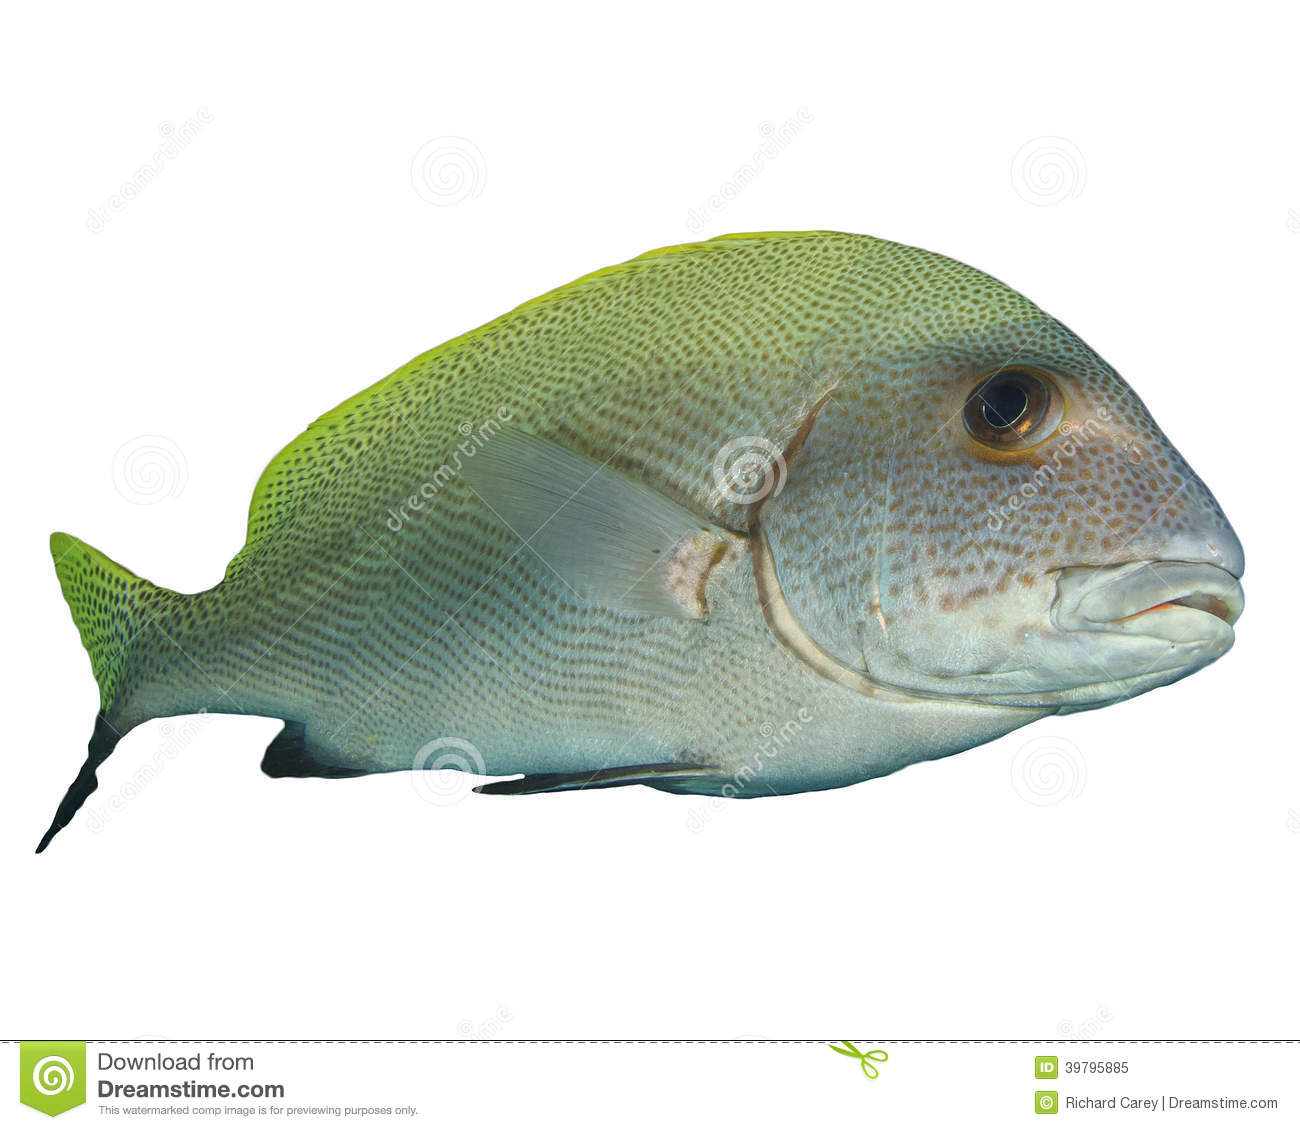 Sweetlips fish stock photo image 39795885 for Sweet lips fish